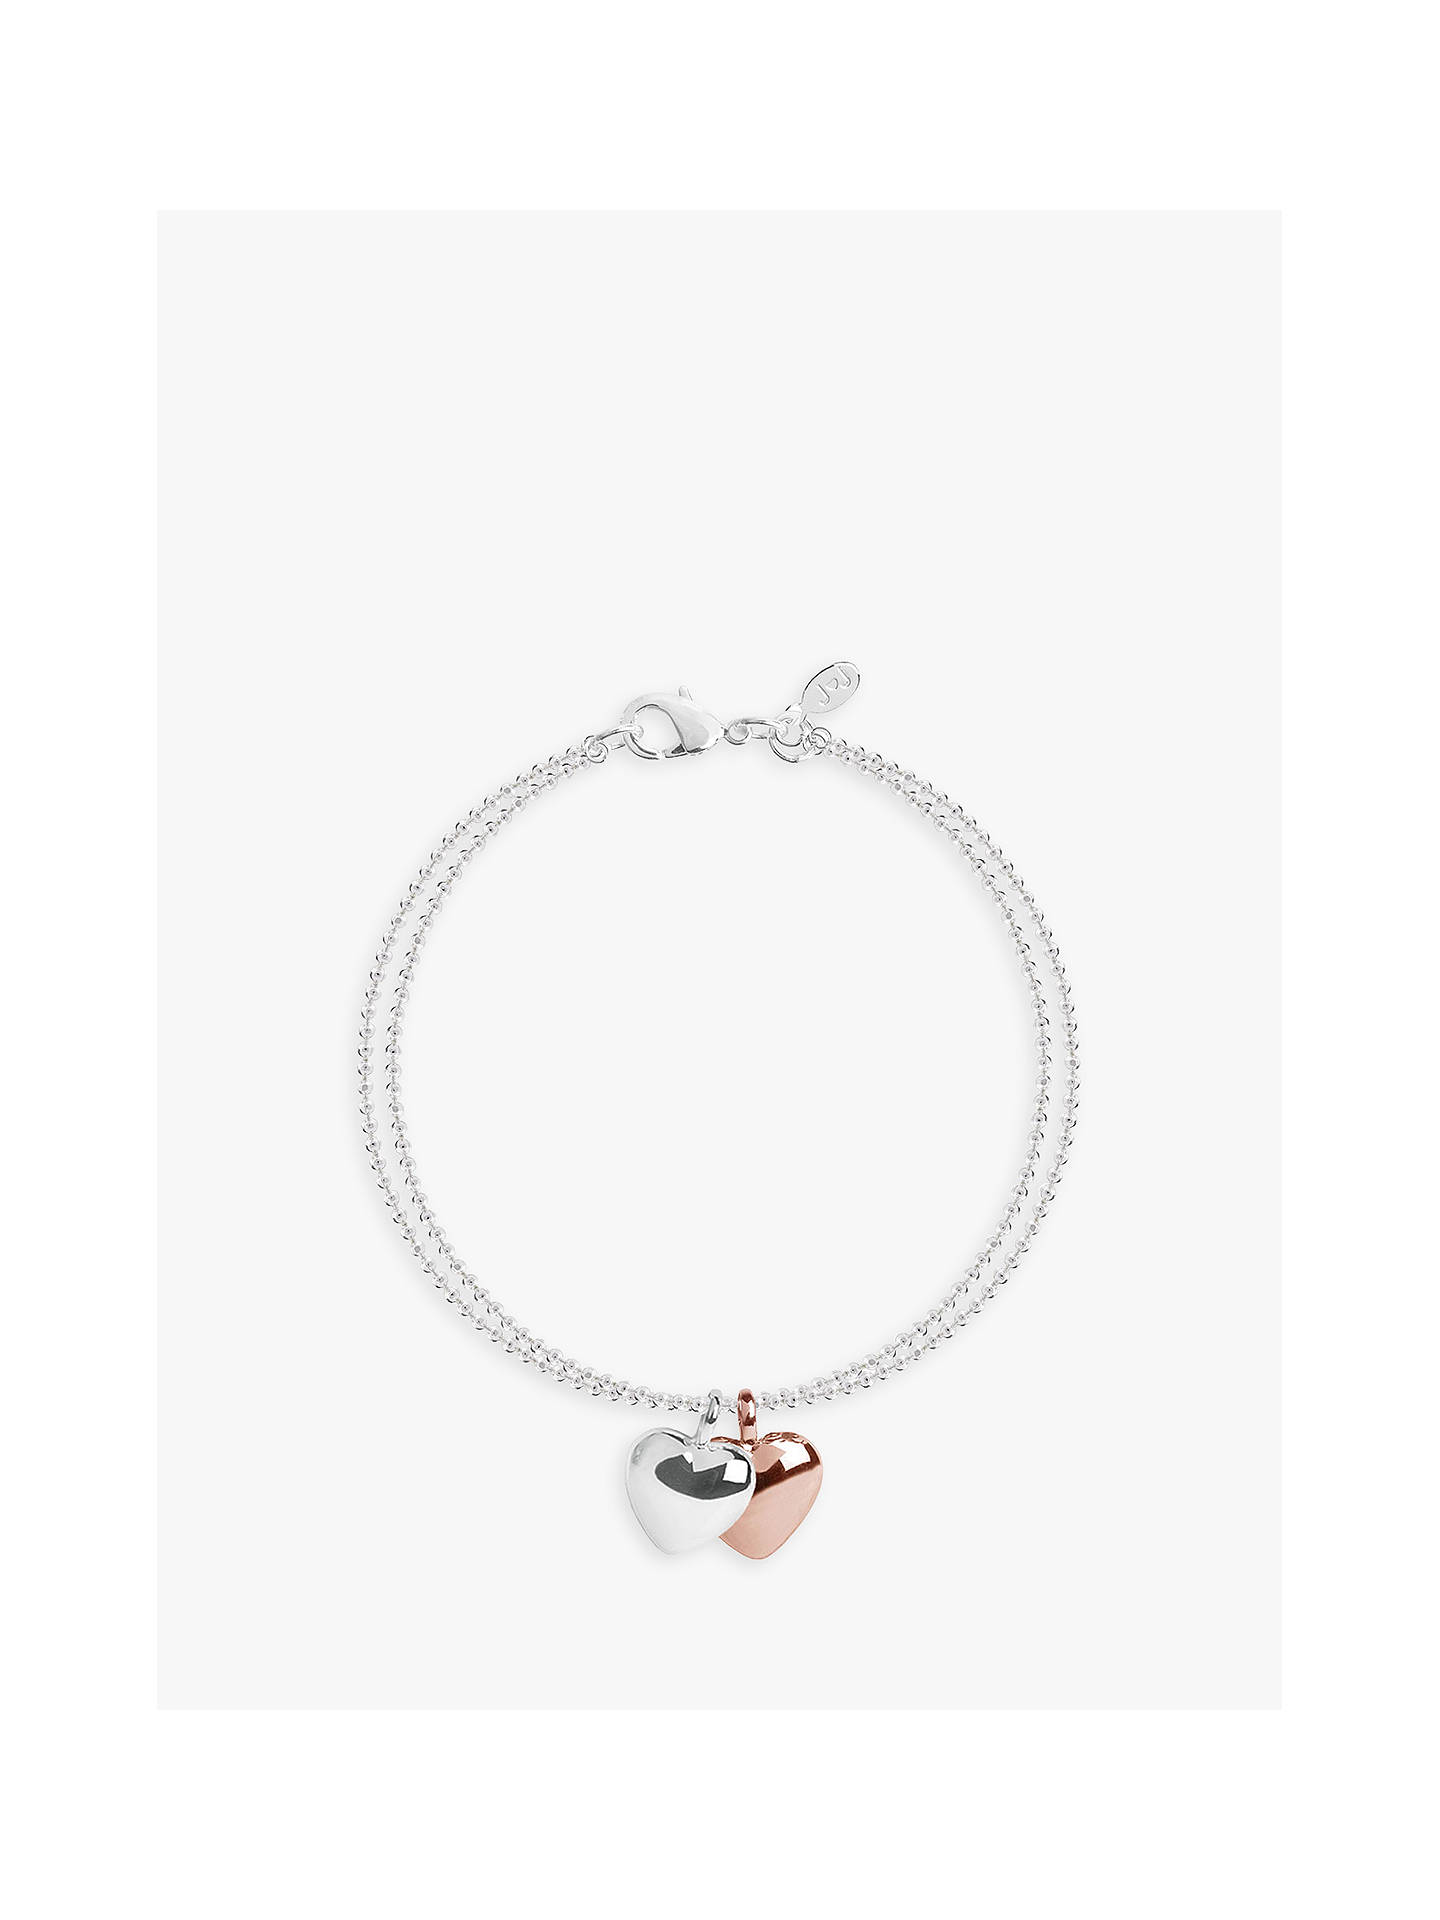 Buy Joma Jewellery Double Heart Chain Bracelet, Silver/Rose Gold Online at johnlewis.com